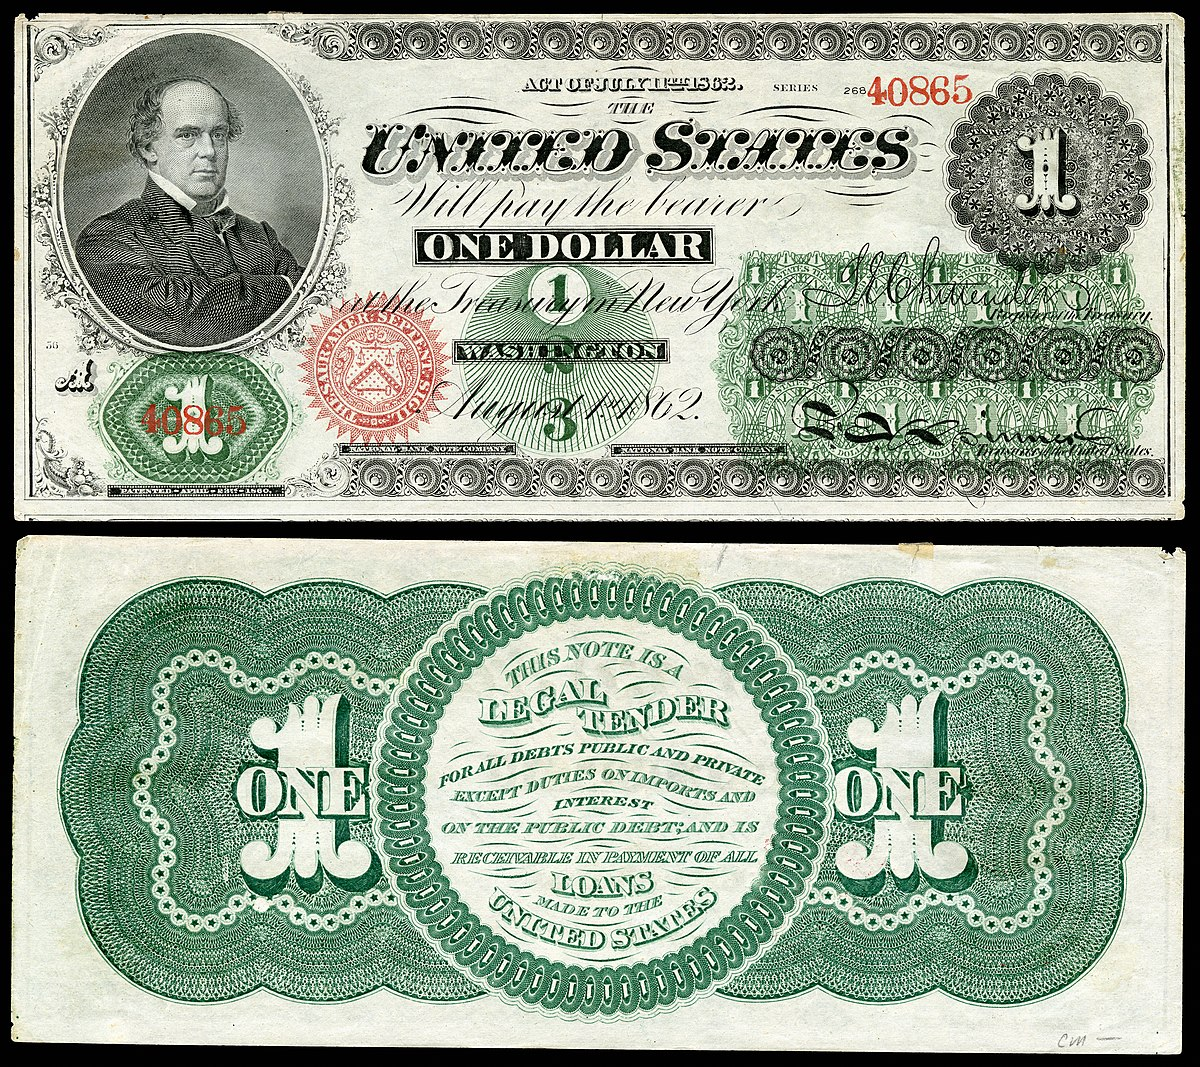 Greenback 1860s Money Wikipedia